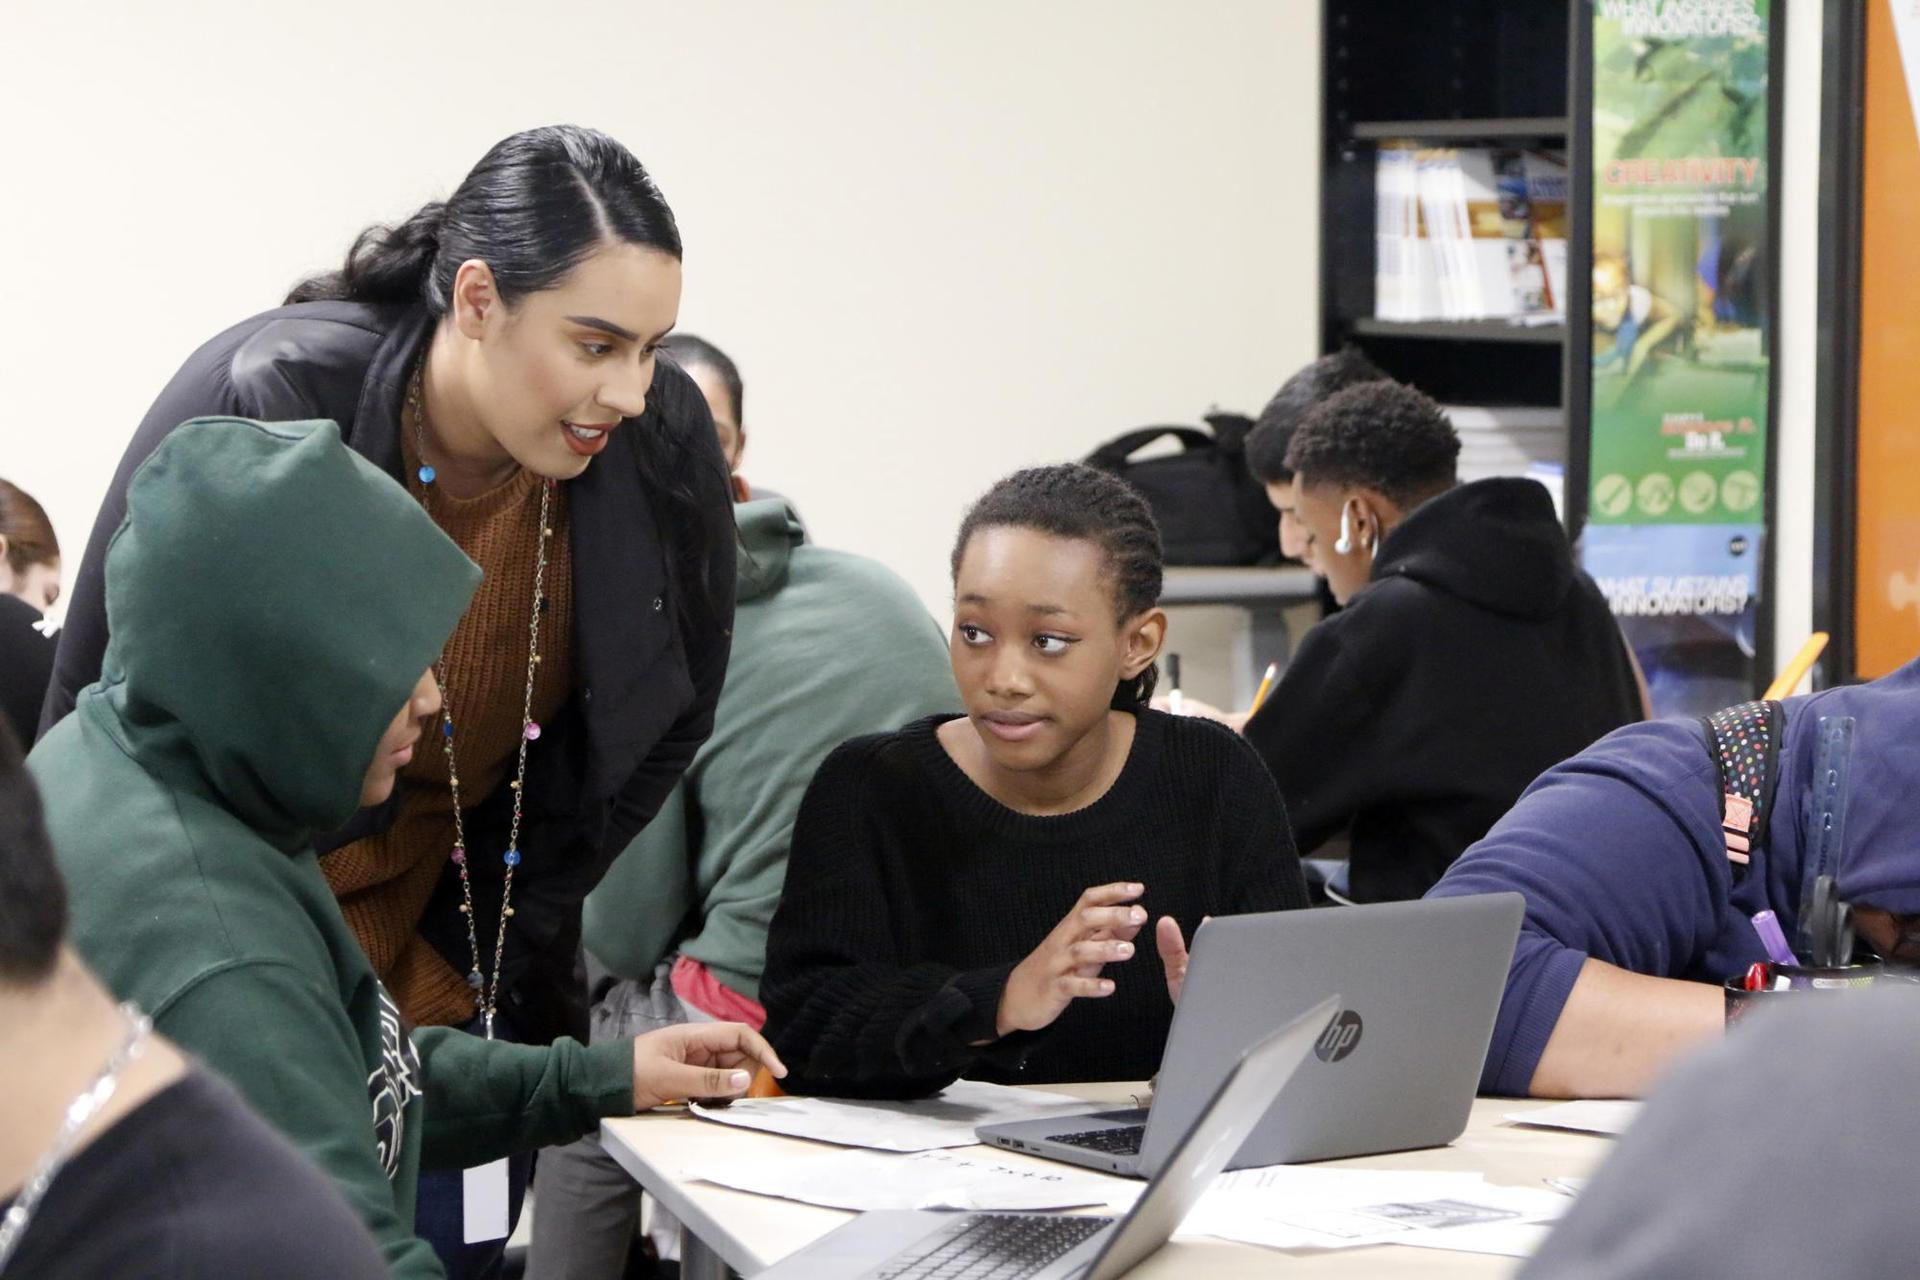 Entrepreneur's scholars engaged in lesson in classroom